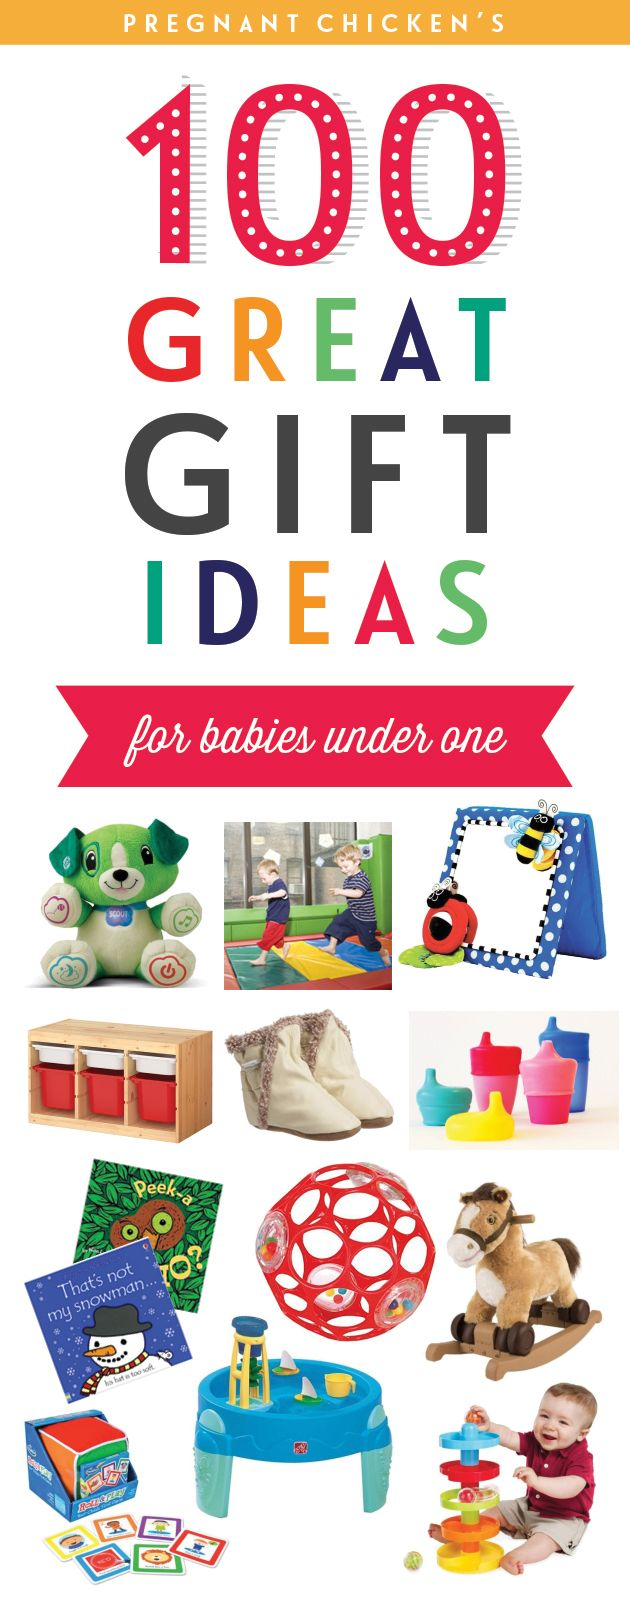 Ideal gifts for baby first birthday